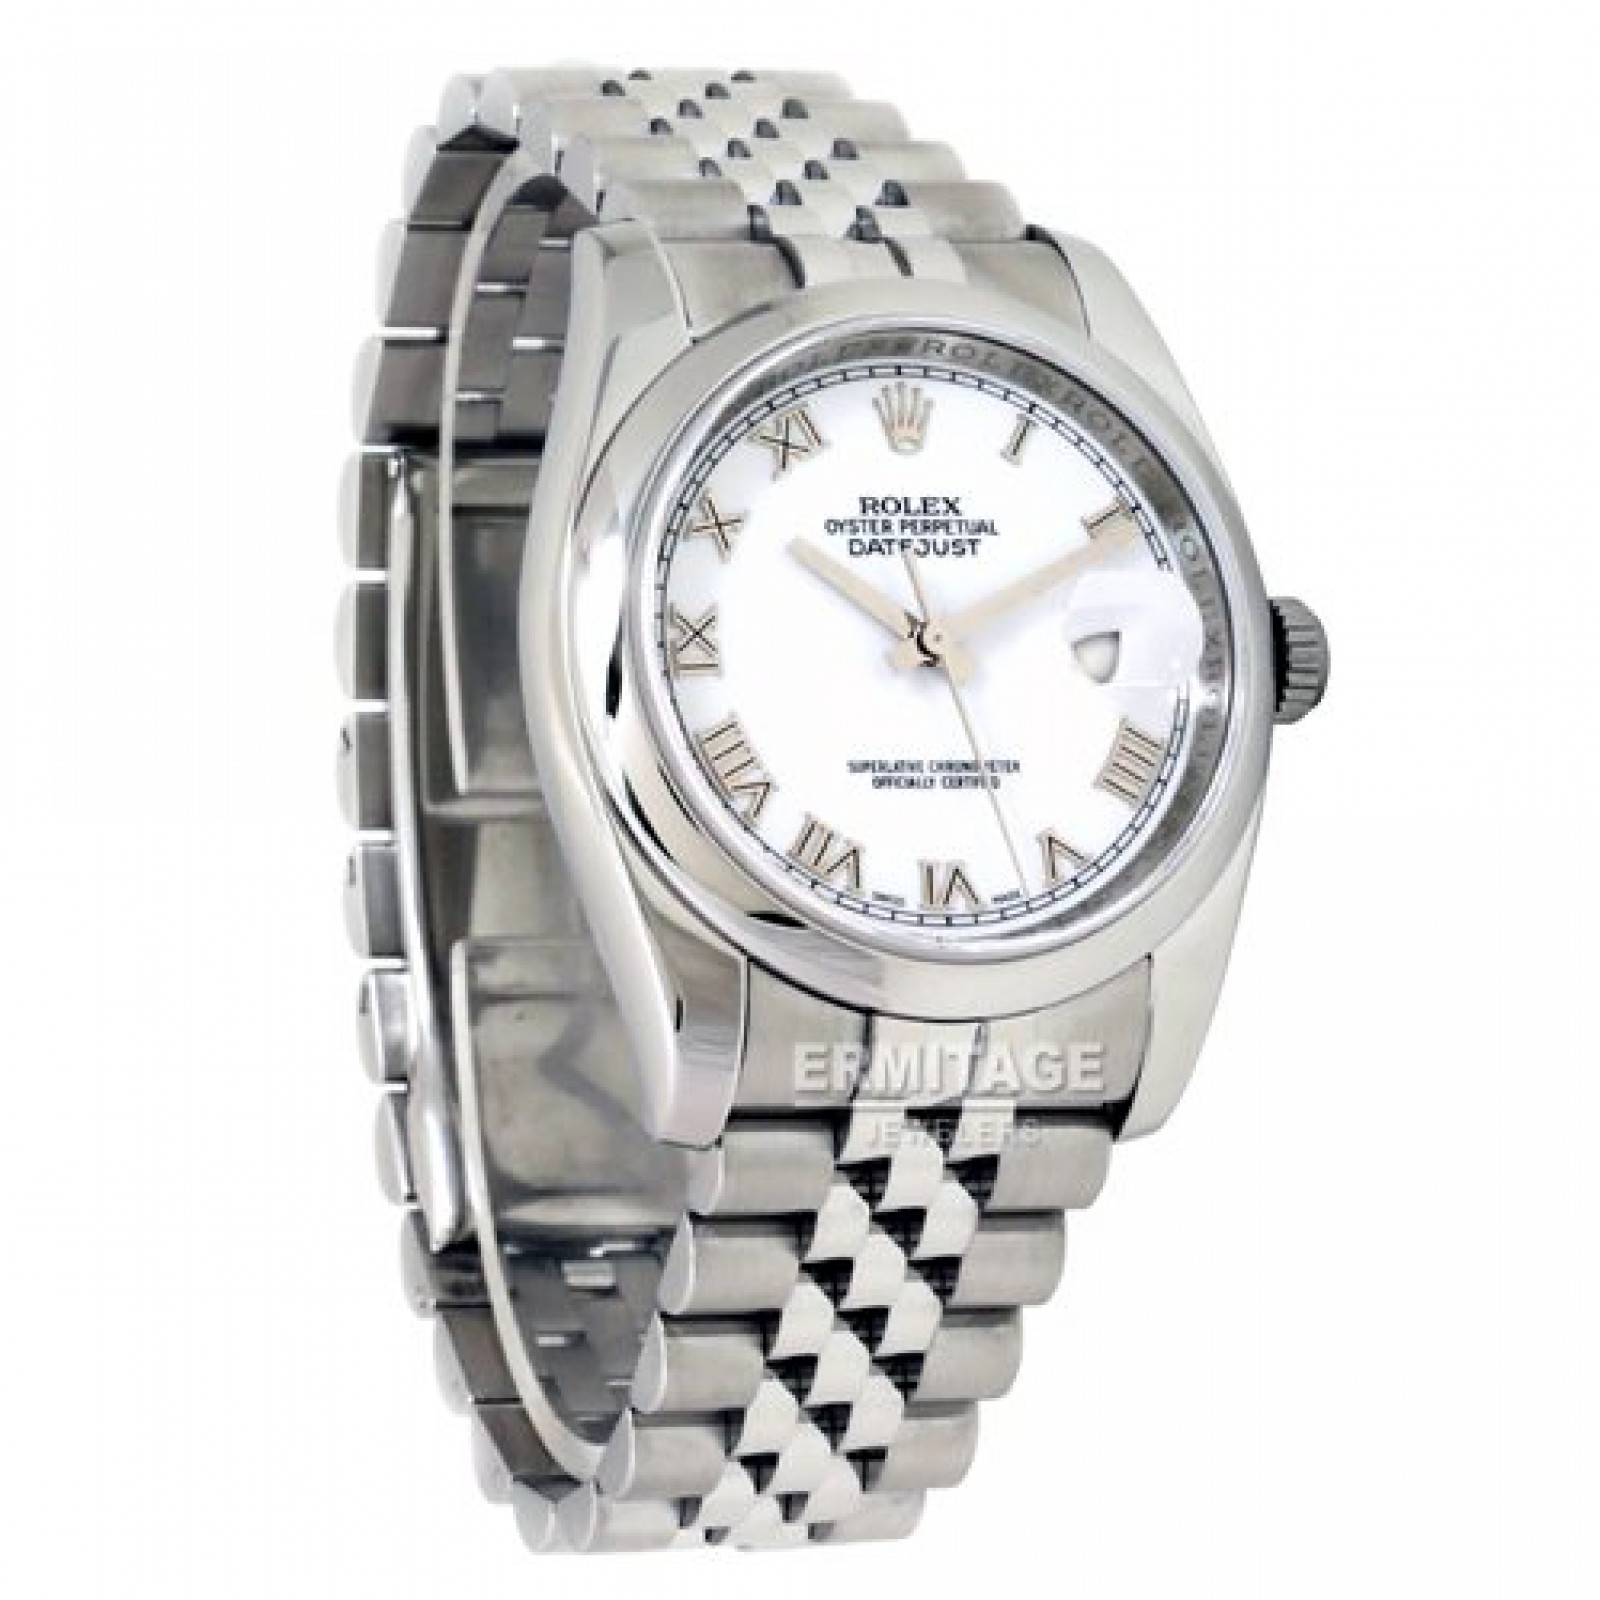 Rolex Datejust 116200 Steel With White Dial